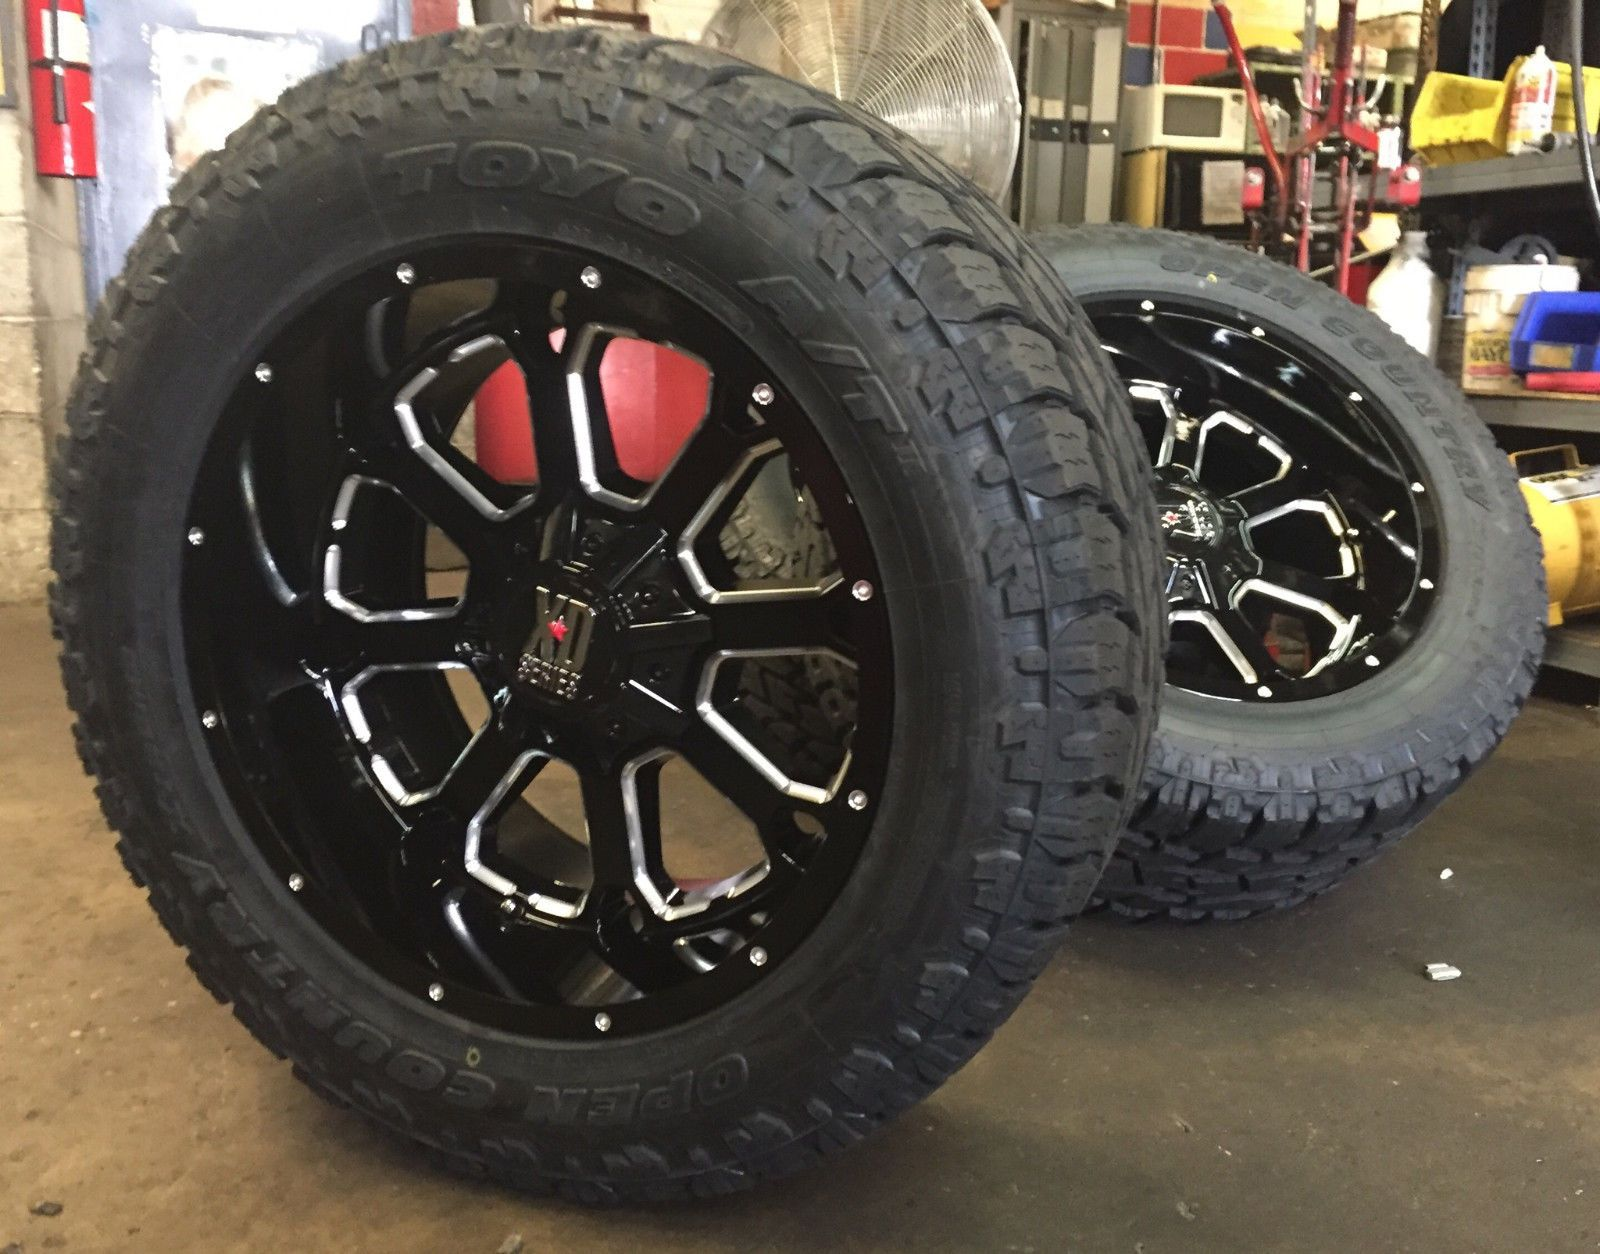 Brand New Wheel And Tire Package Set Of 4 Xd825 Buck Wheels 20x10 Et 24 Offset 8x180 Bolt Pattern F Black Wheels Wheel And Tire Packages Car Wheels Diy